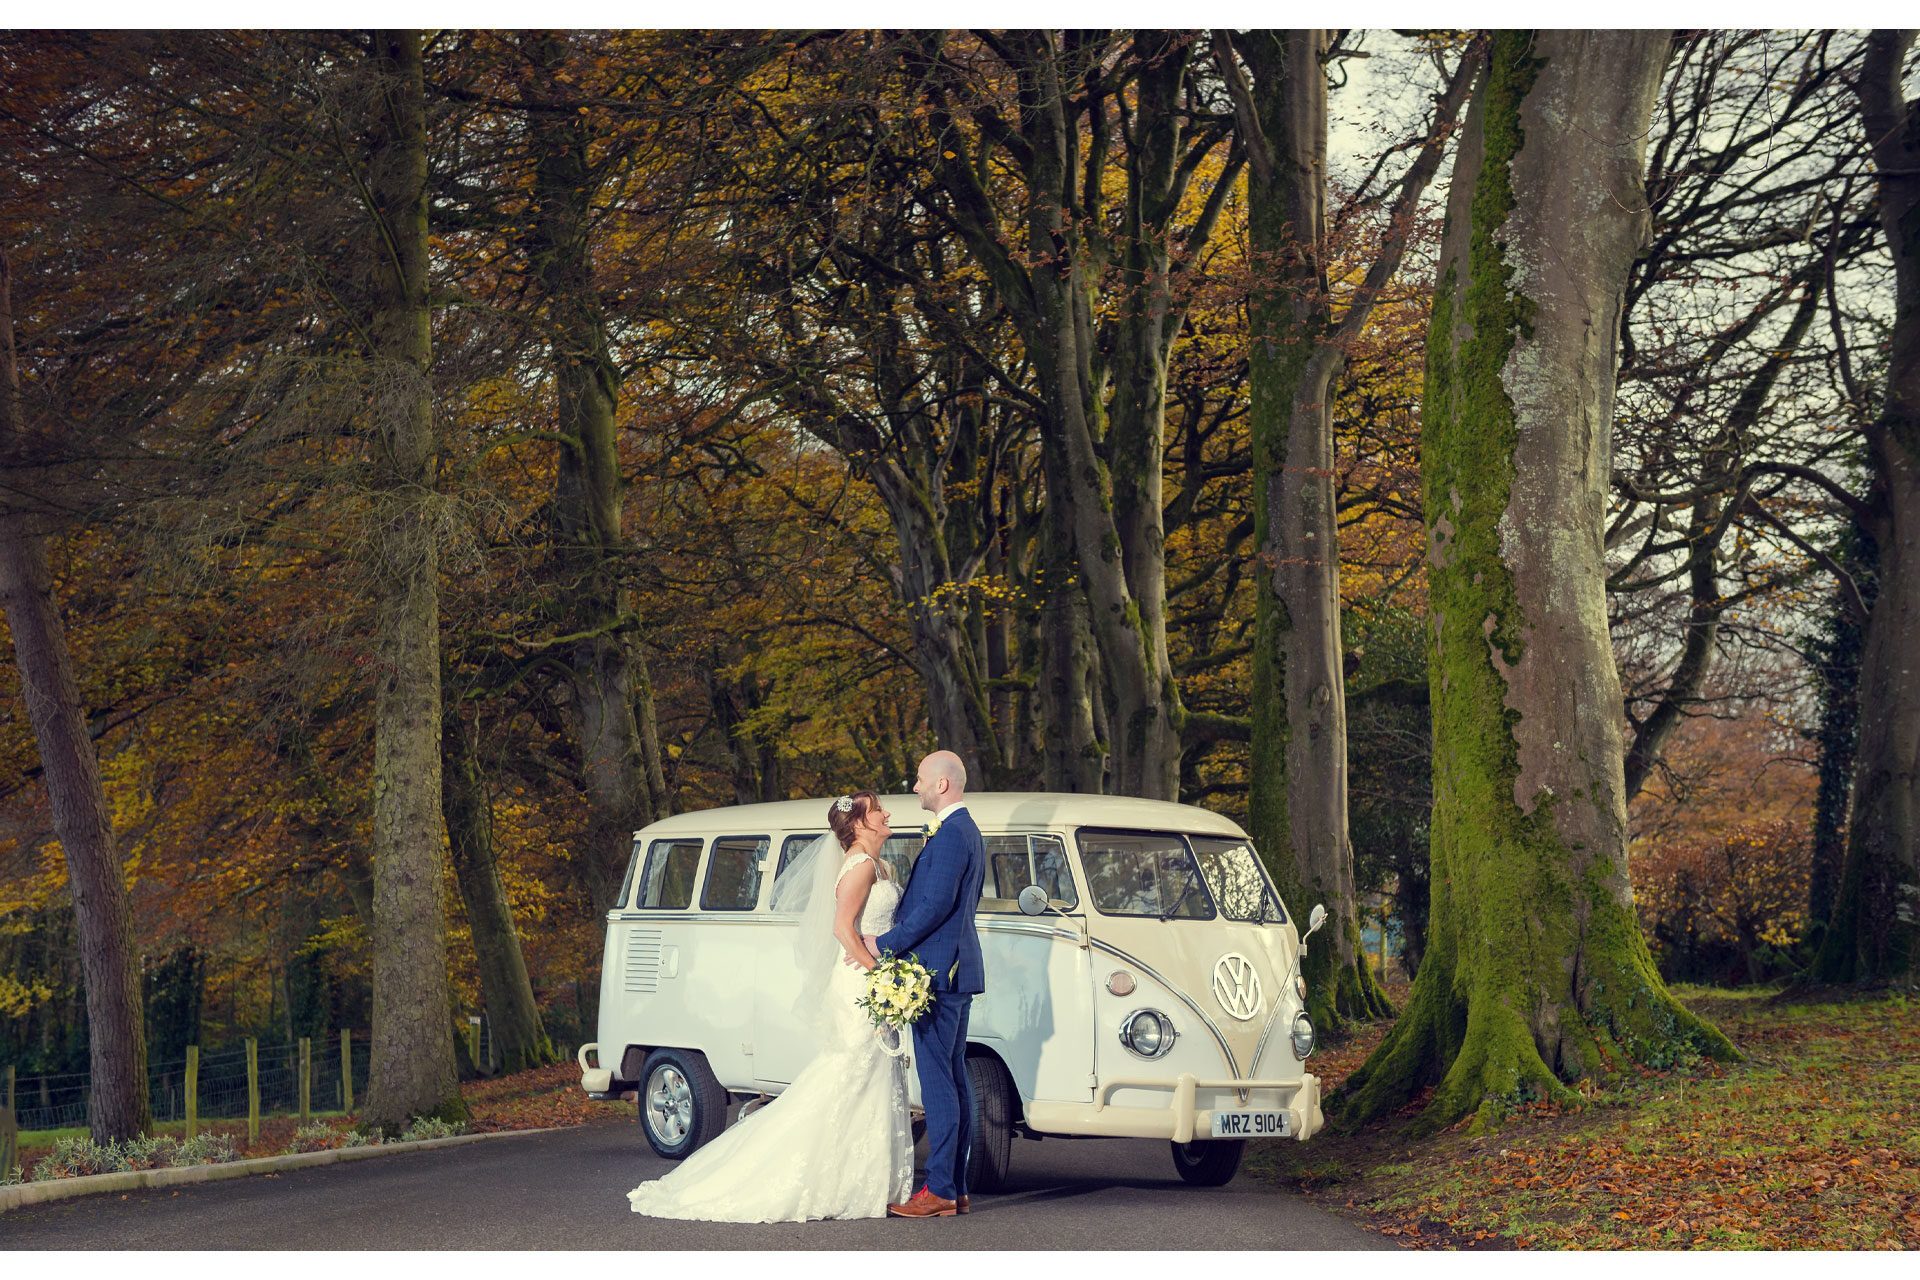 Photo of Chrissy and Kenny on their wedding day, captured with their wedding car along the tree lined driveway to Corick House Hotel, Clogher, Co. Tyrone, Northern Ireland.